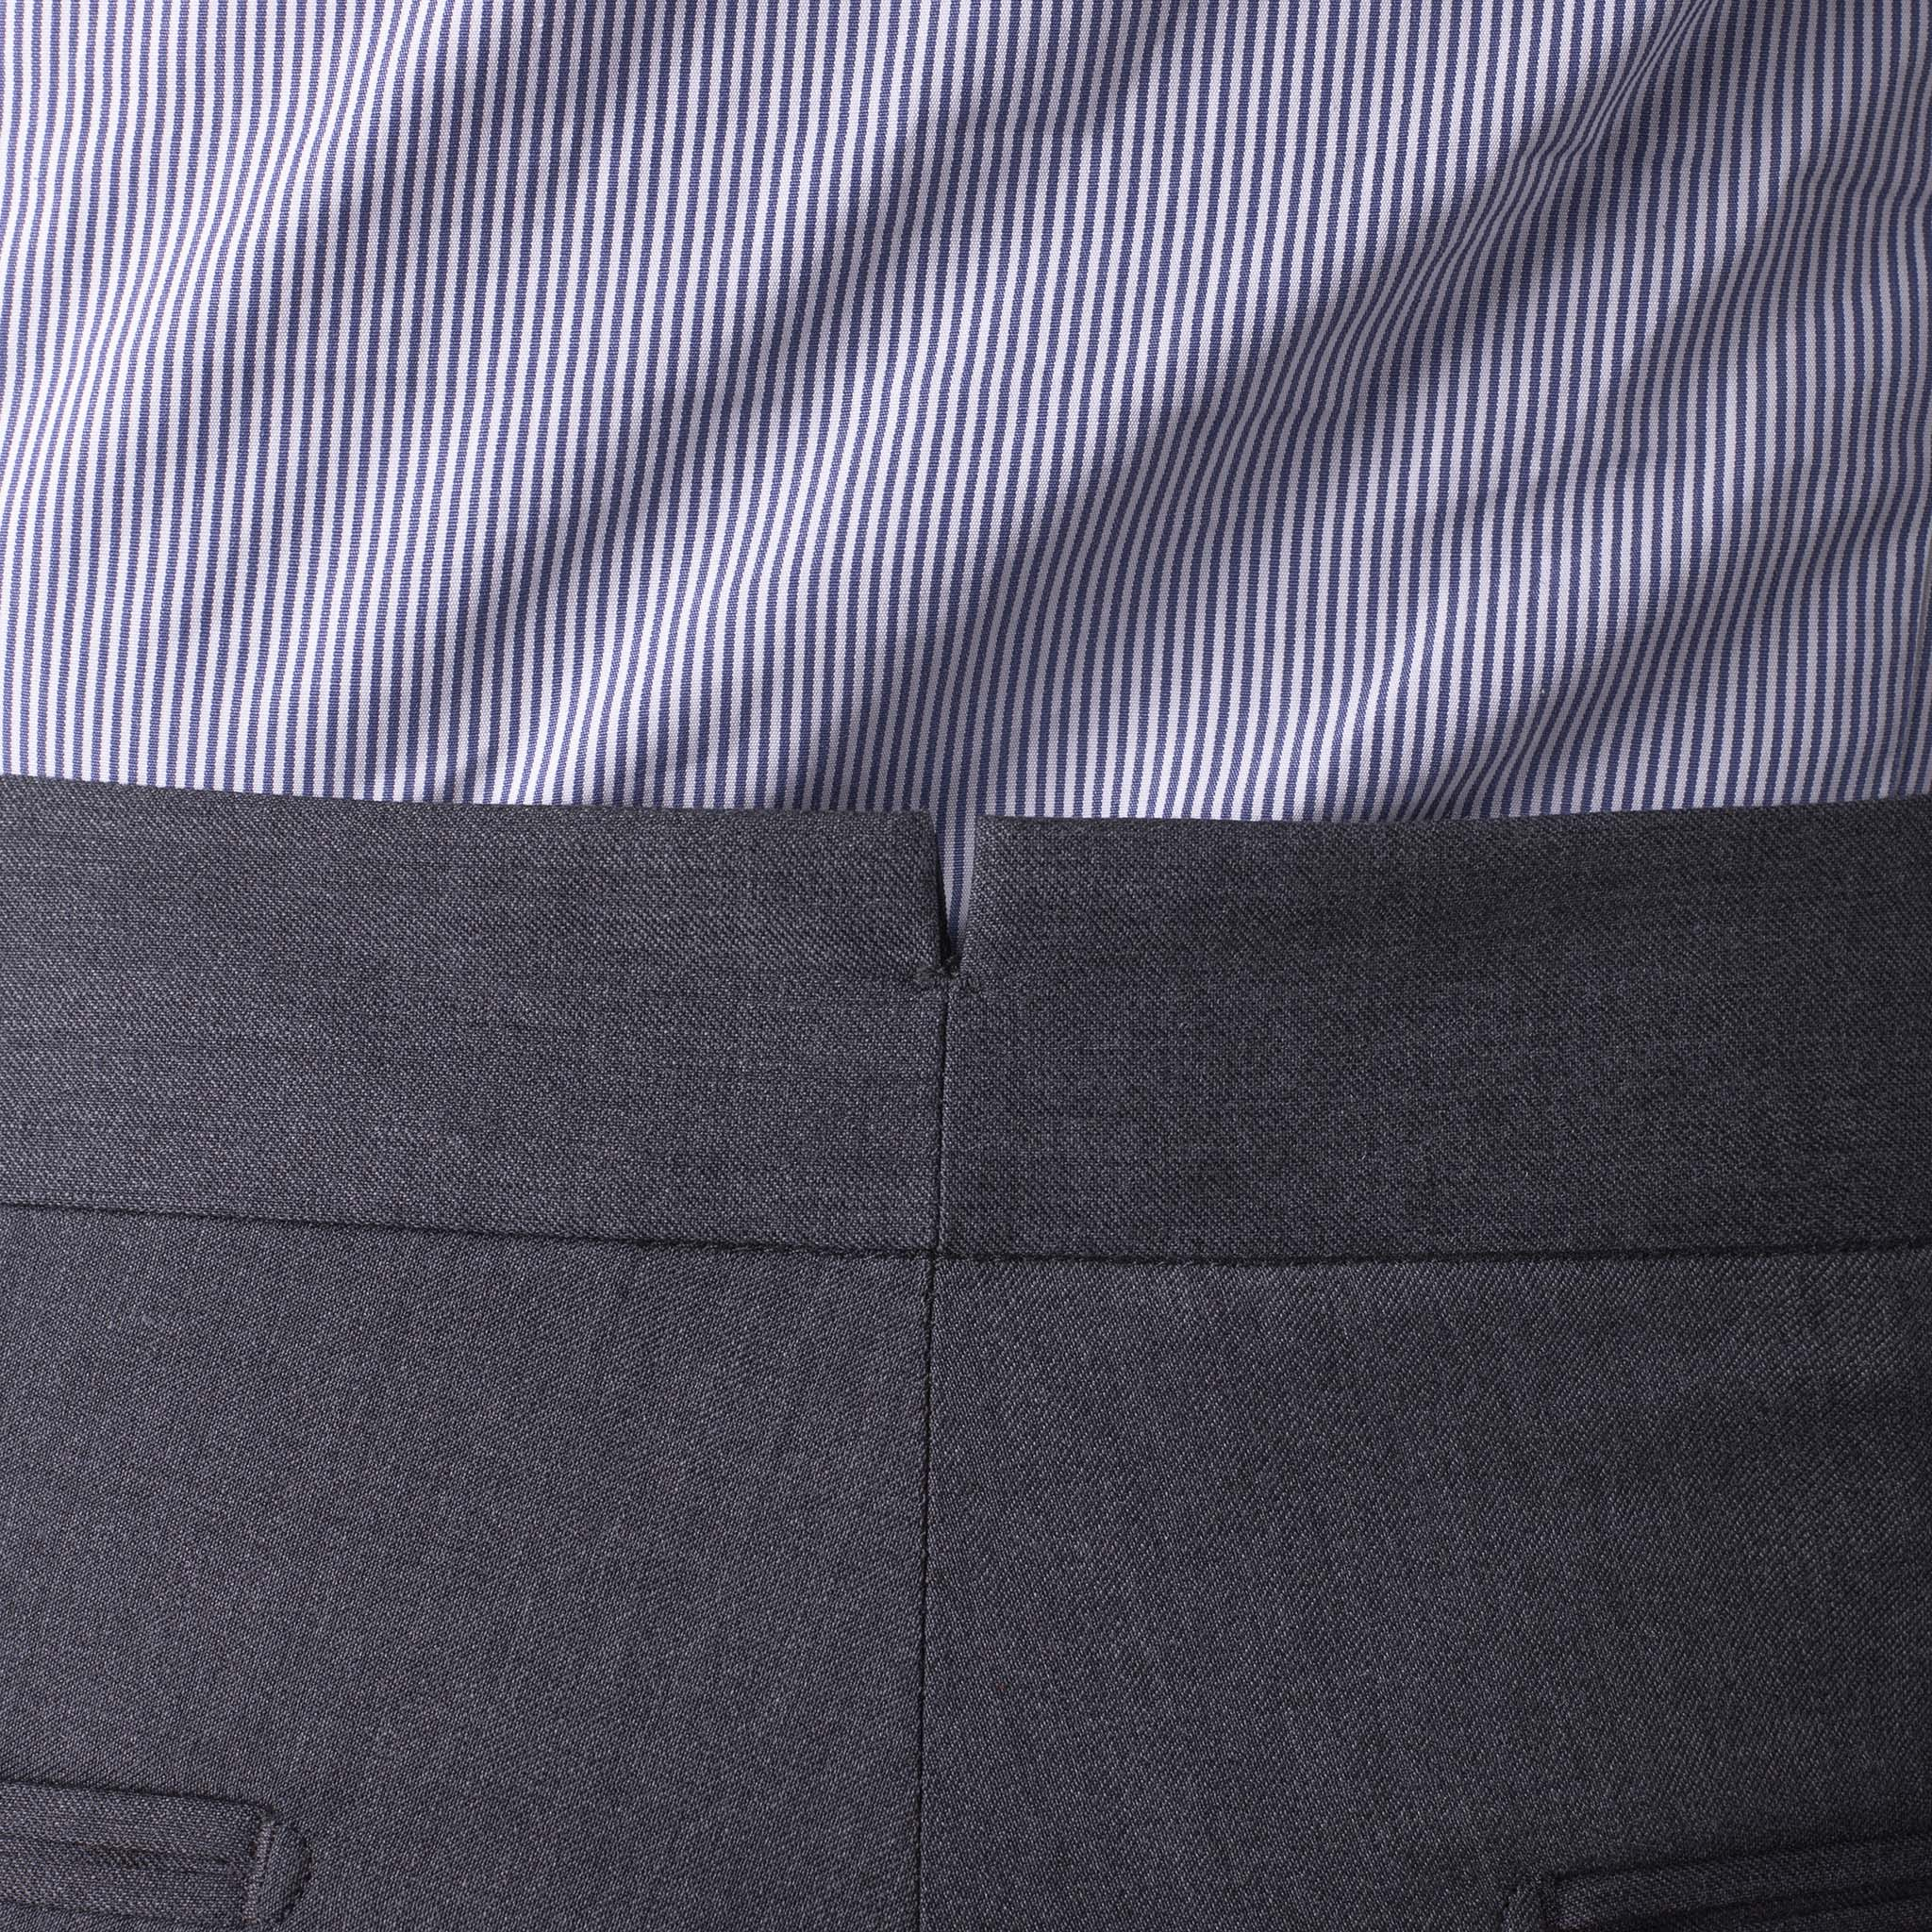 TROUSERS 02 – 04 The Seëlk 4